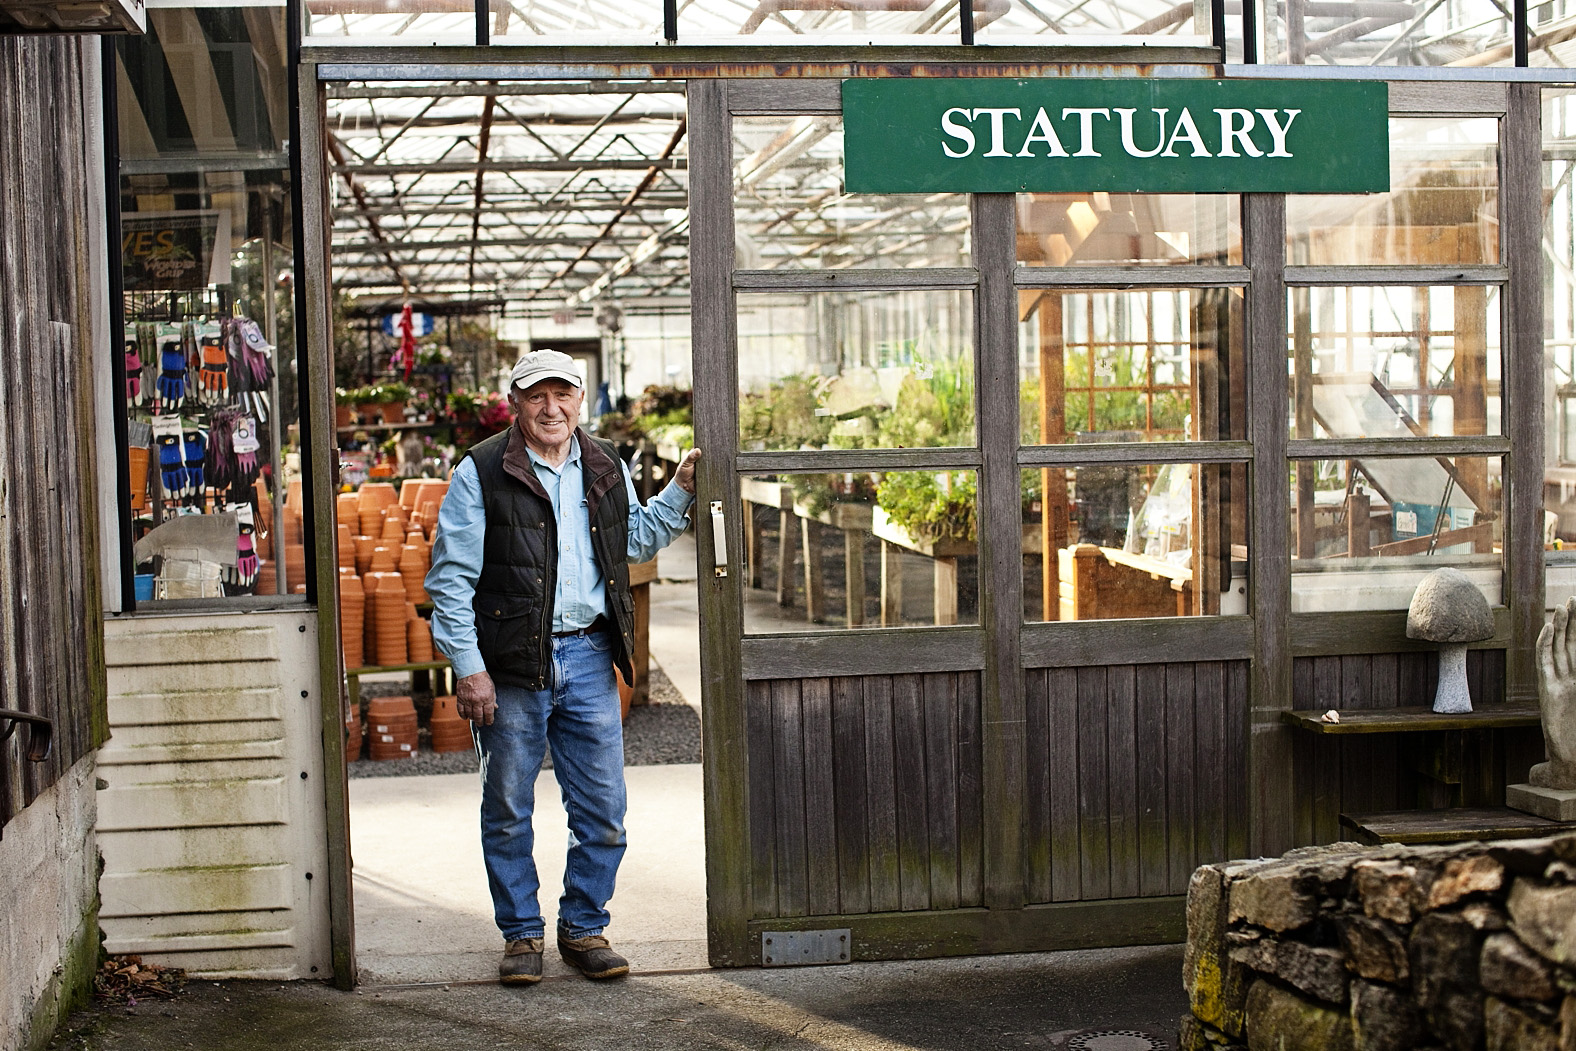 Sal Gilbertie | Gilbertie's Garden Center for Moffly Media